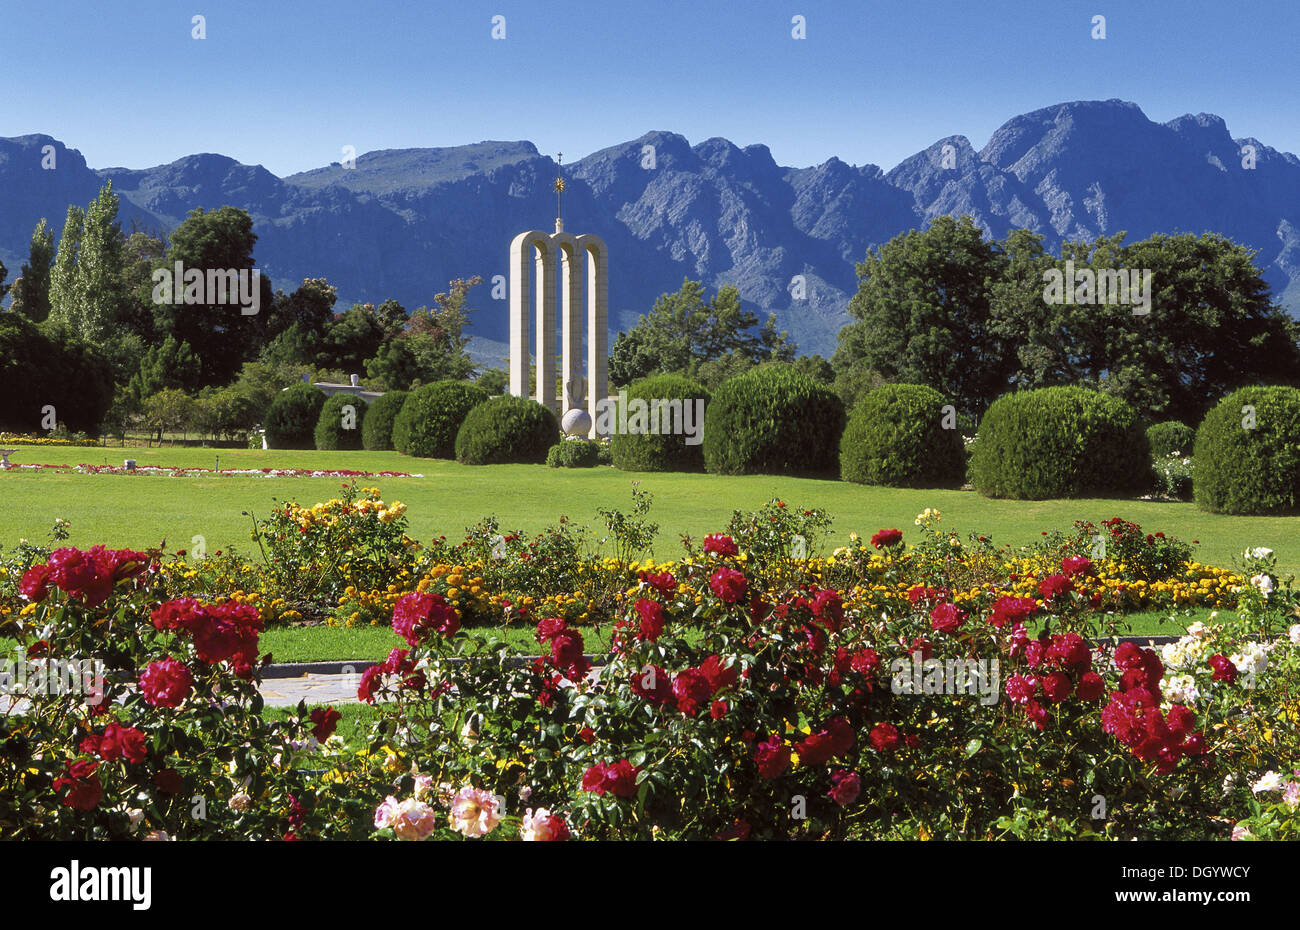 Huguenot Monument, Franschhoek, South Africa - Stock Image